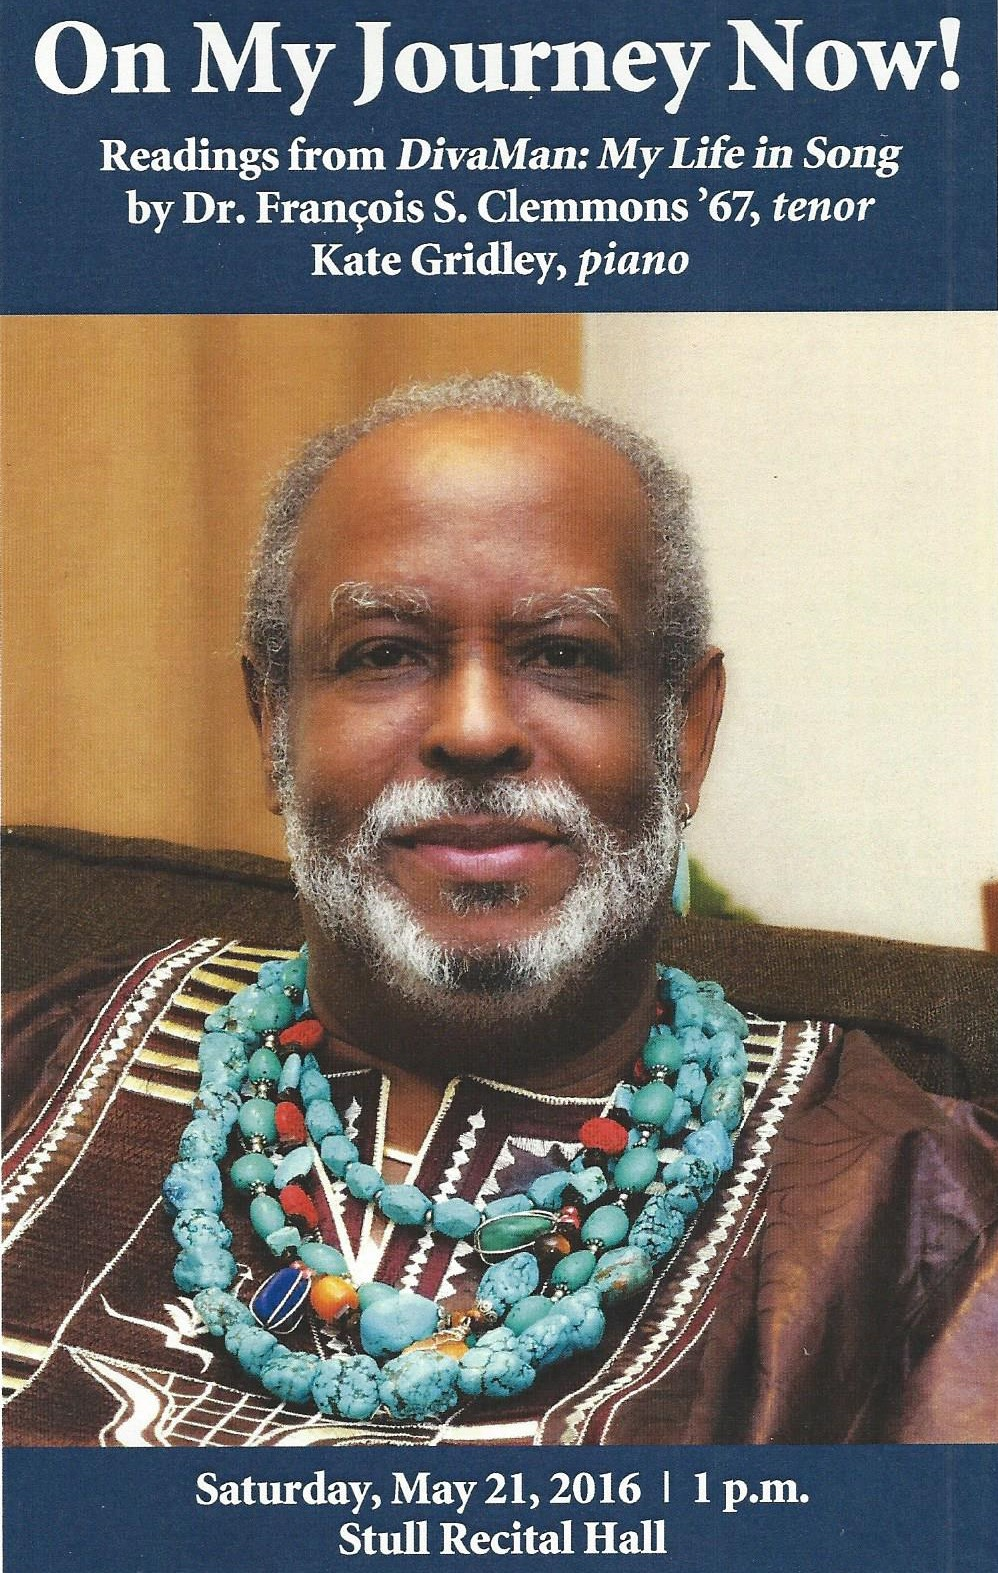 Performance in Stull Hall at Oberlin College Conservatory of Music on Saturday, May 21, 2016. DivaMan read excerpts from his upcoming memoir, DivaMan: My Life in Song, and sang African-American Spirituals, honoring the 150th anniversary of the Conservatory.